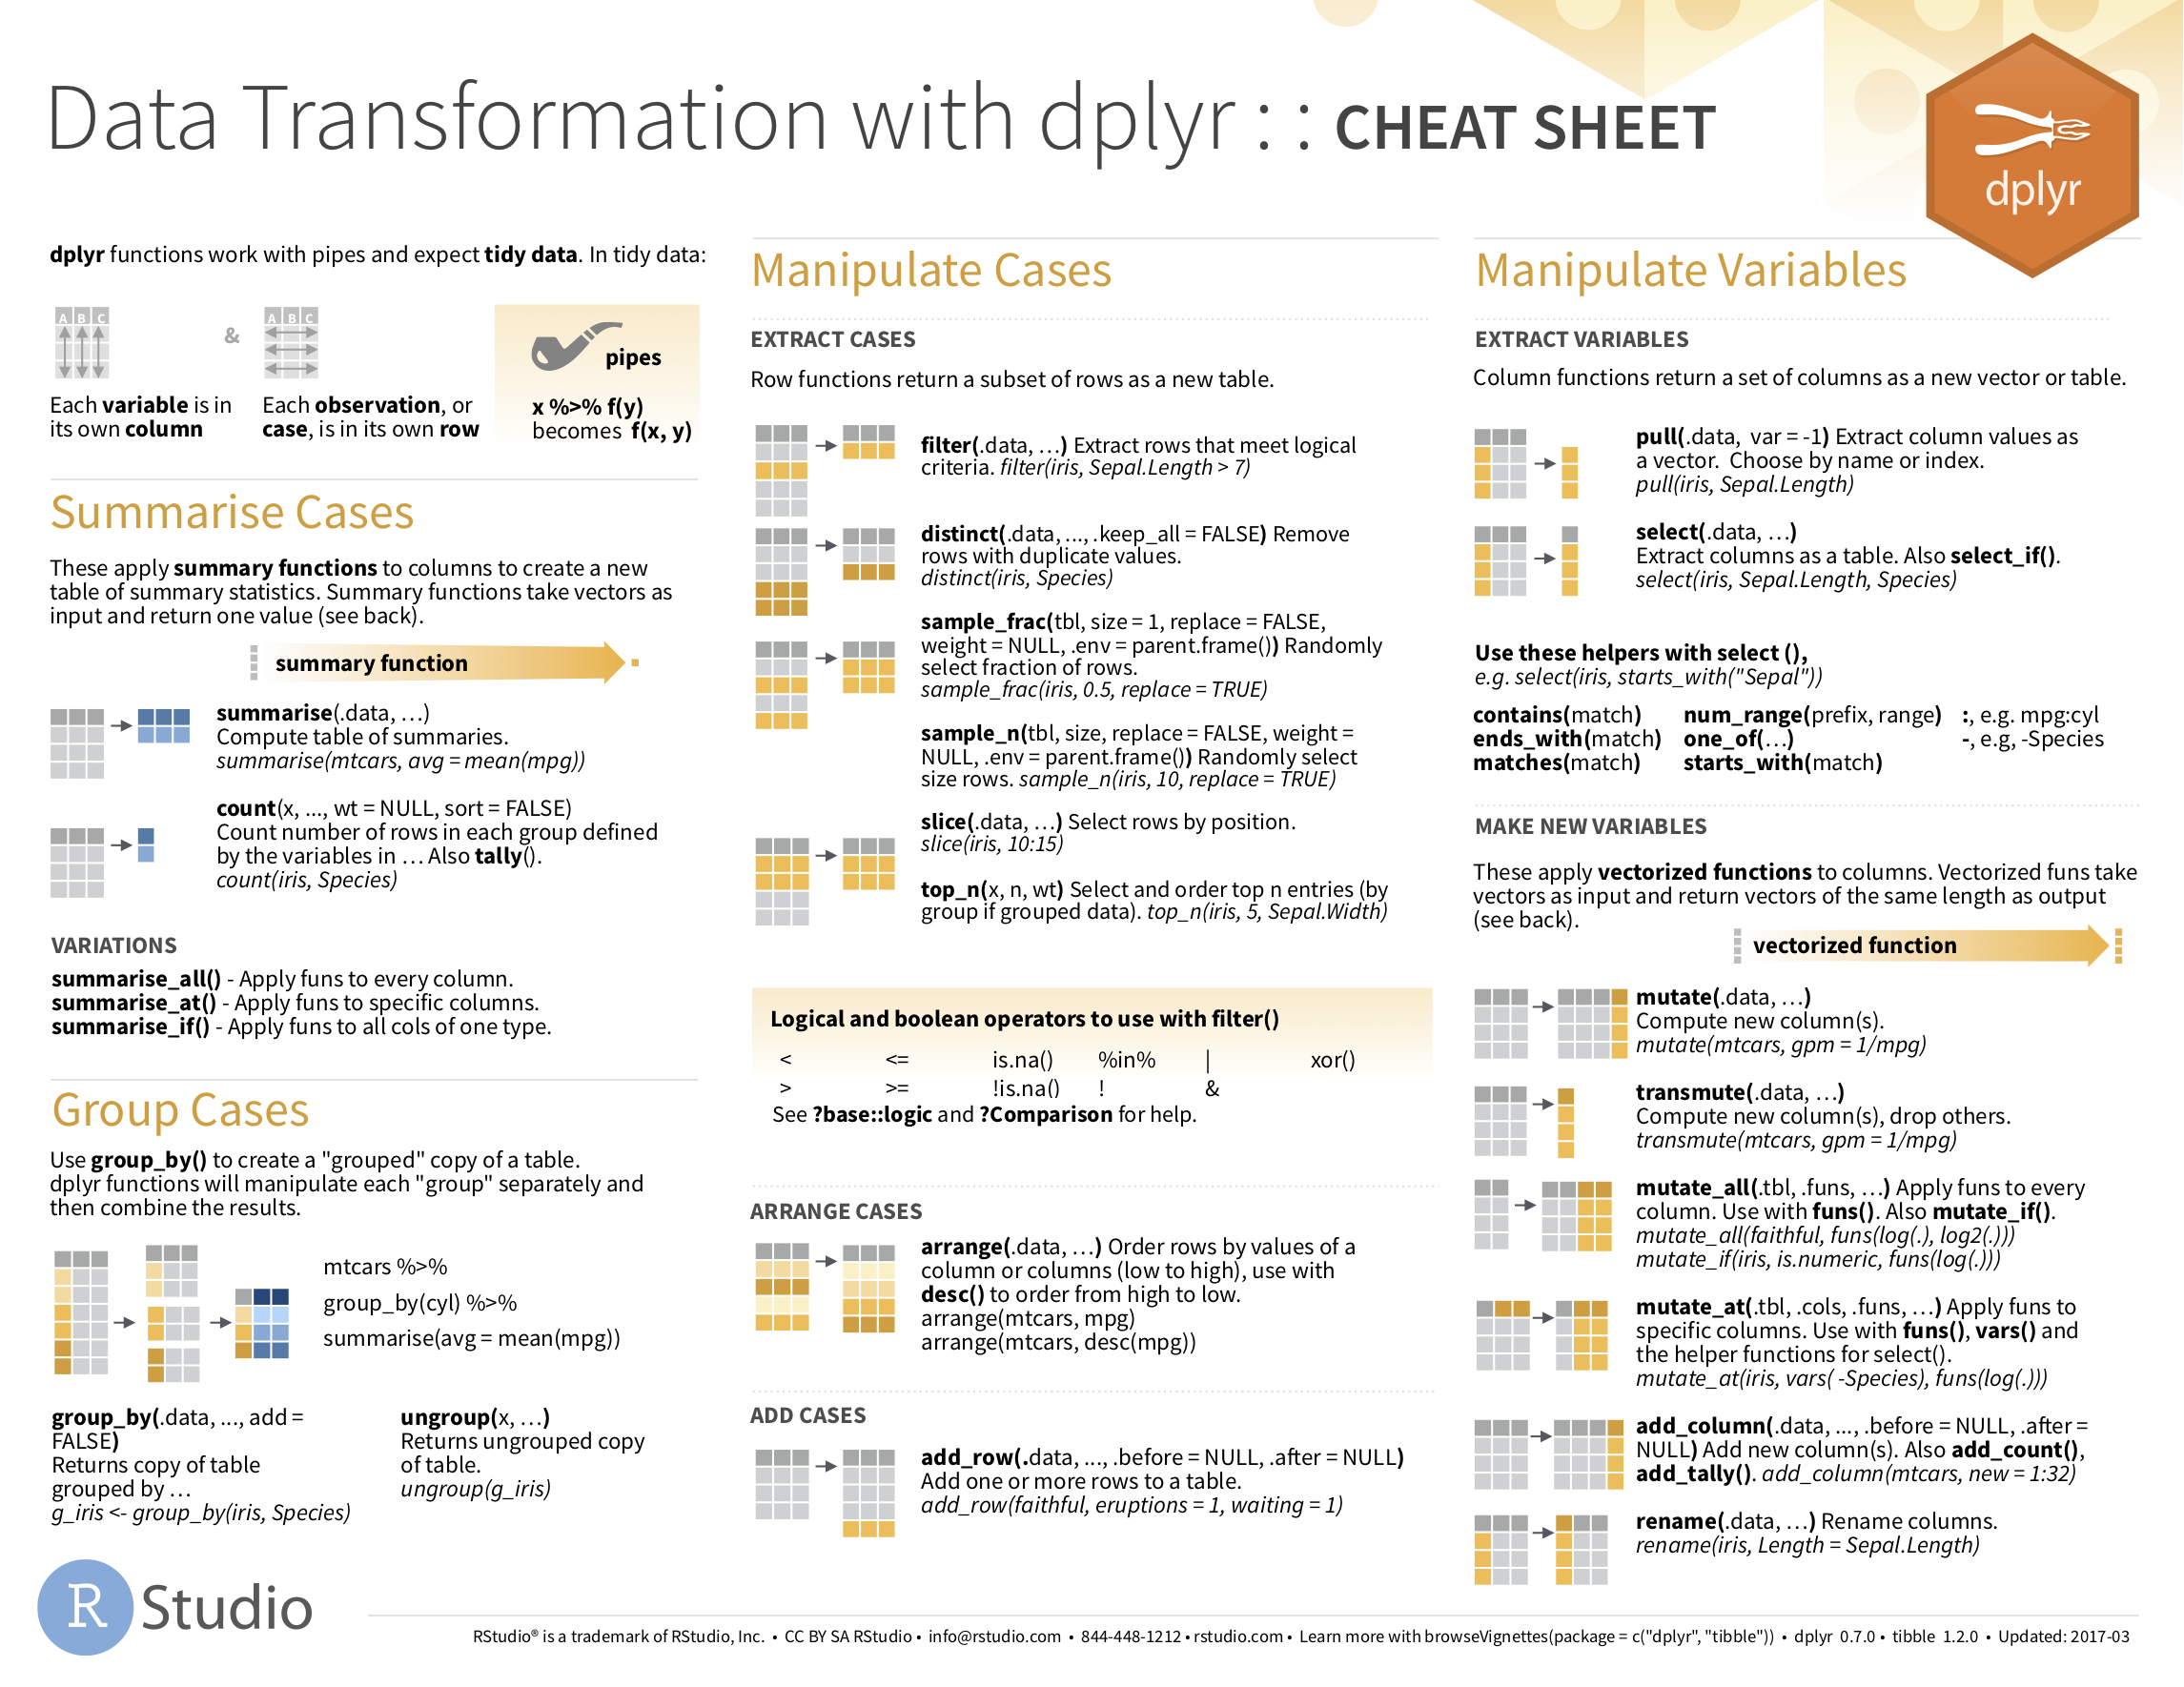 Data Transformation with dplyr cheatsheat